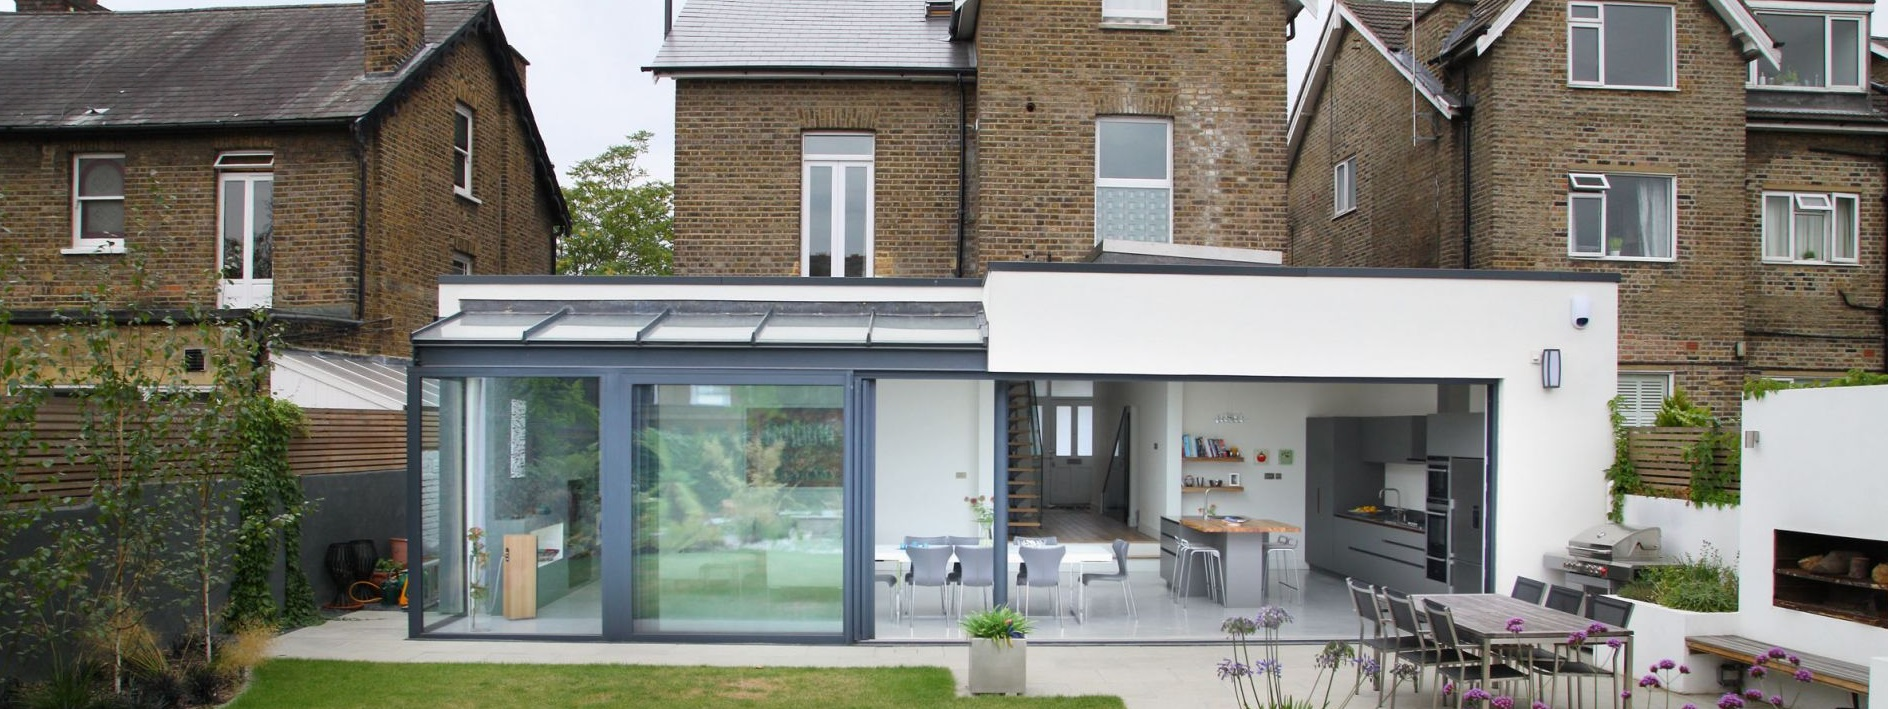 Single Story Extension Cost >> Cdg Surrey Extensions Home Re Design Single Strory Extension